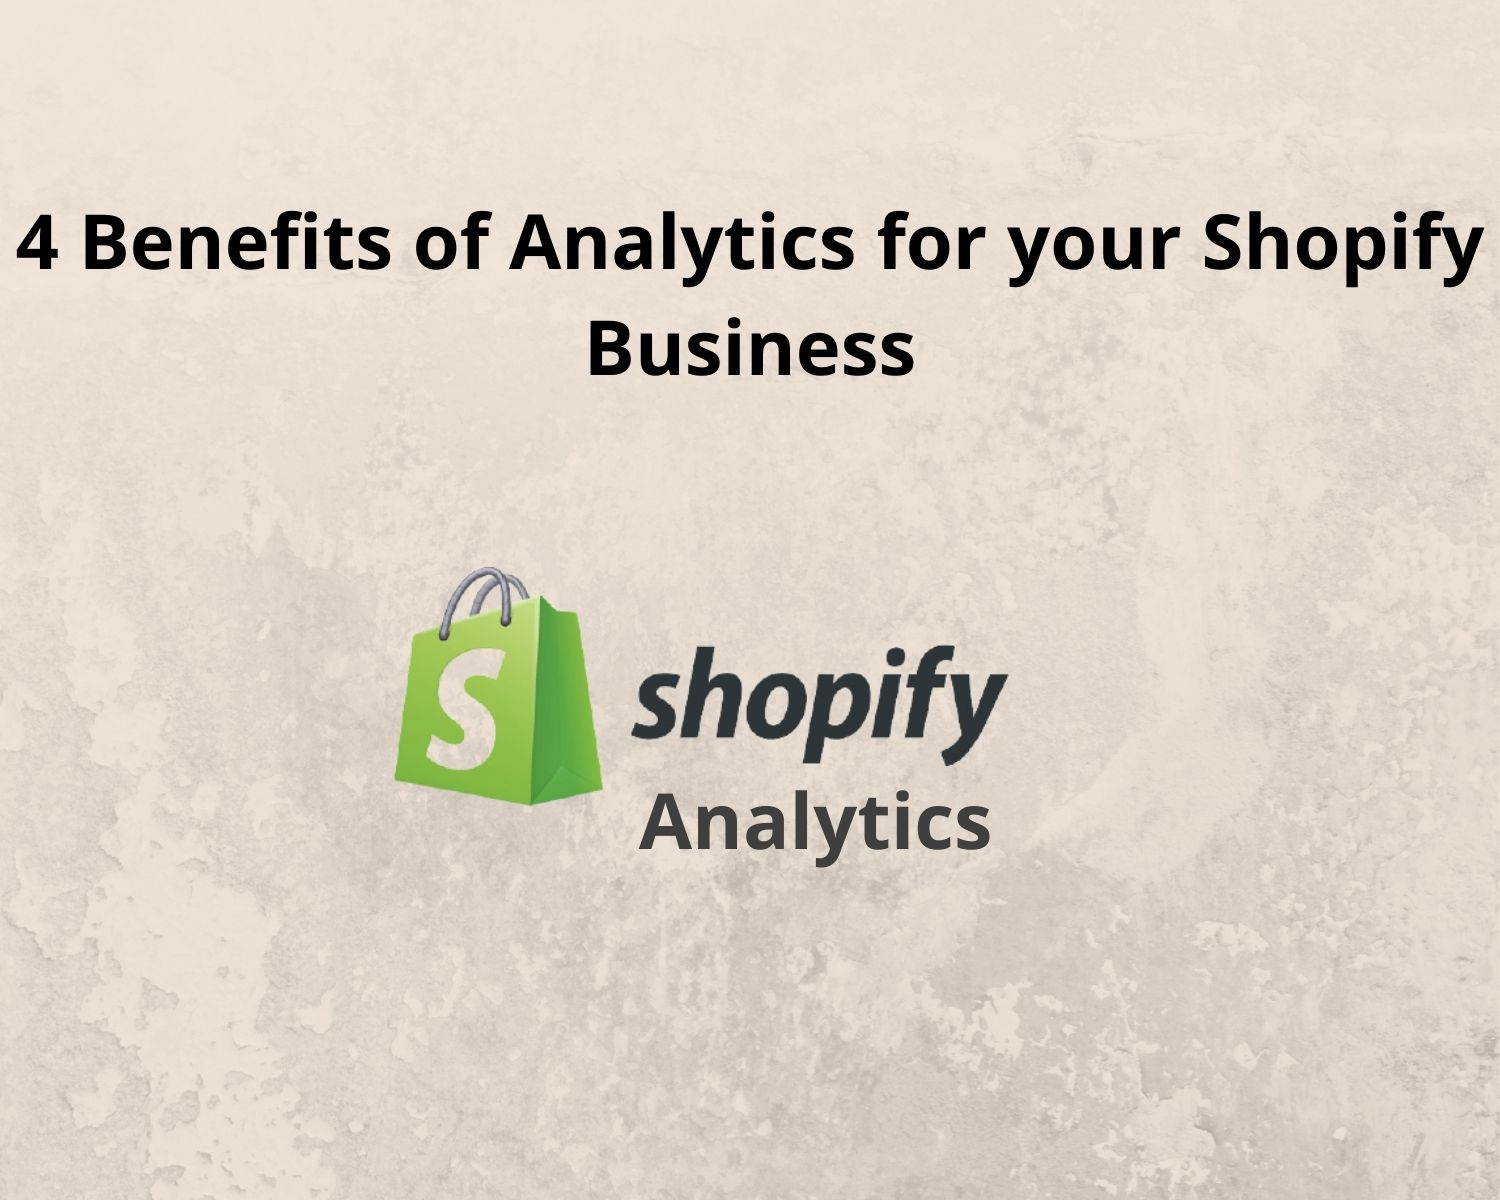 4 Benefits of Analytics for your Shopify Business